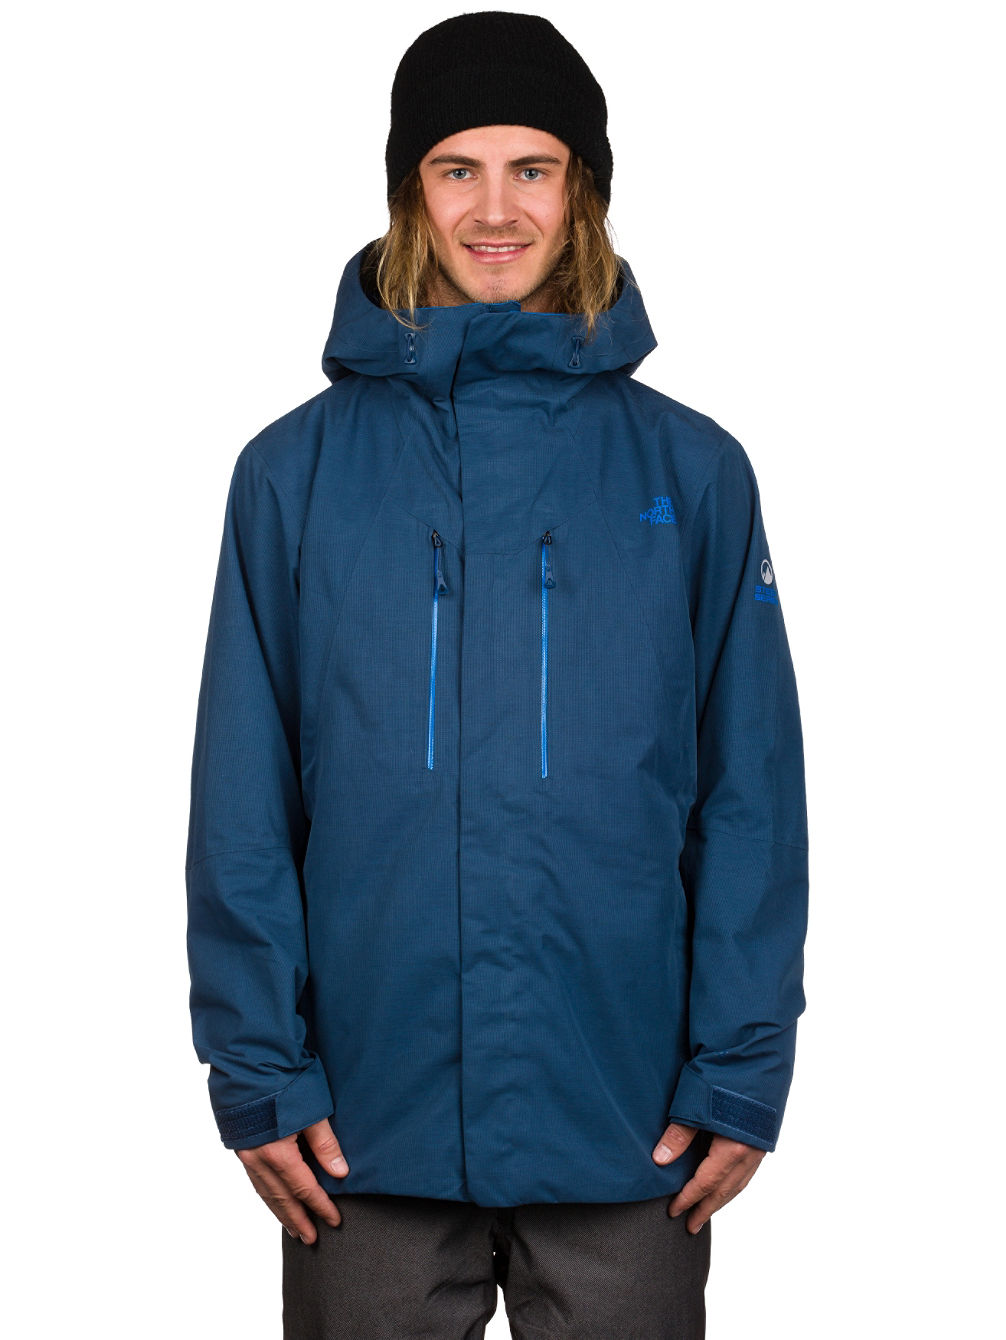 1c5359bf07e0 Buy THE NORTH FACE Nfz Jacket online at Blue Tomato